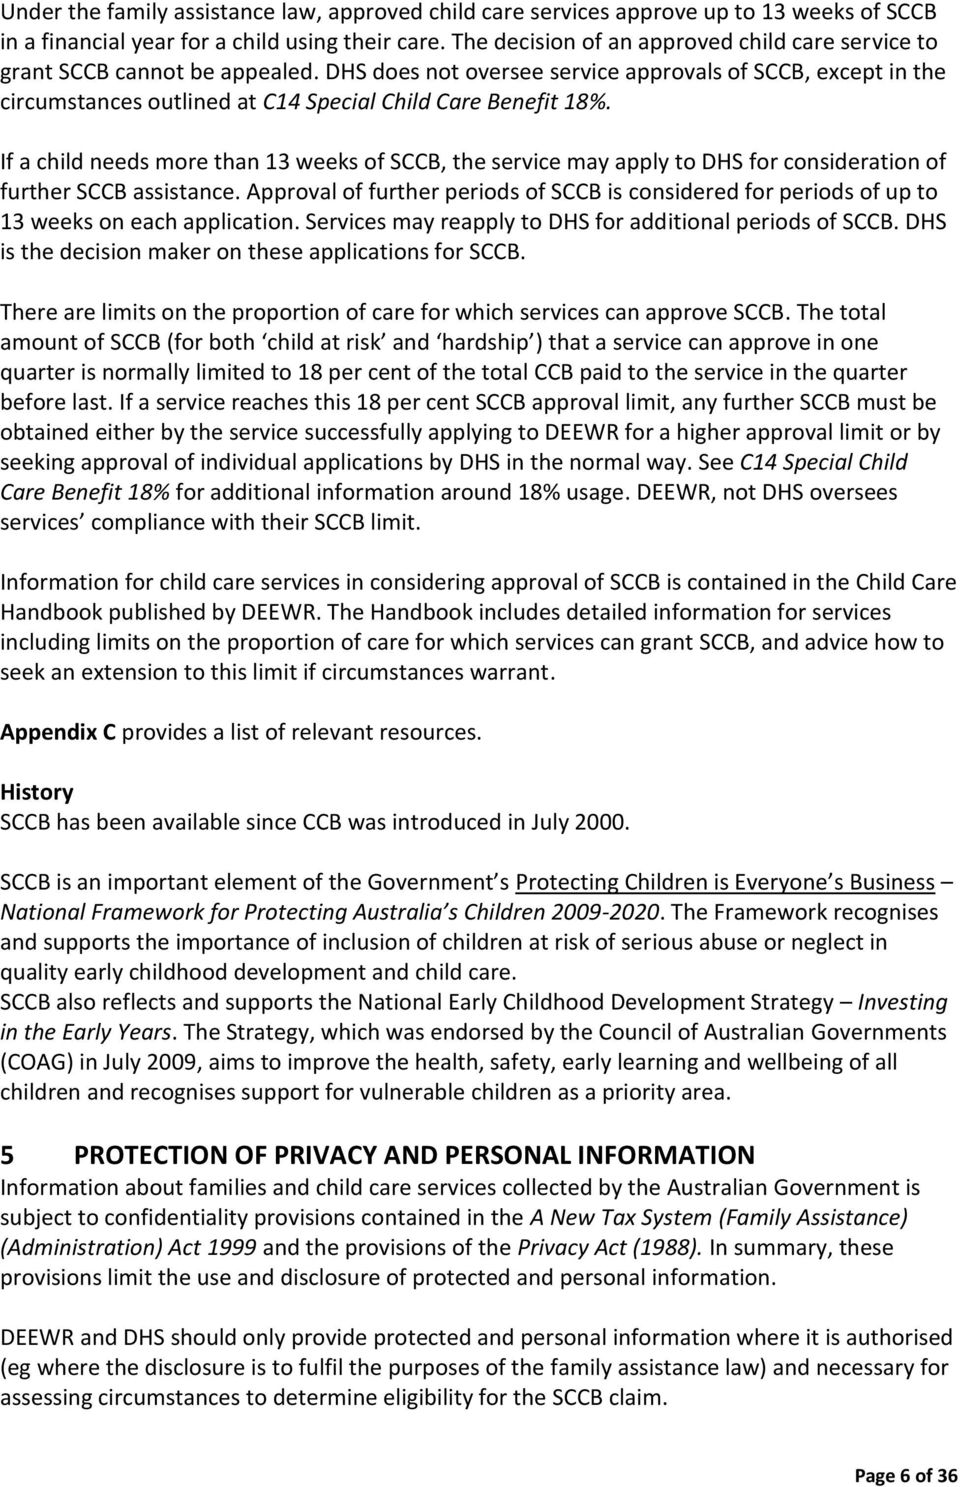 DHS does not oversee service approvals of SCCB, except in the circumstances outlined at C14 Special Child Care Benefit 18%.